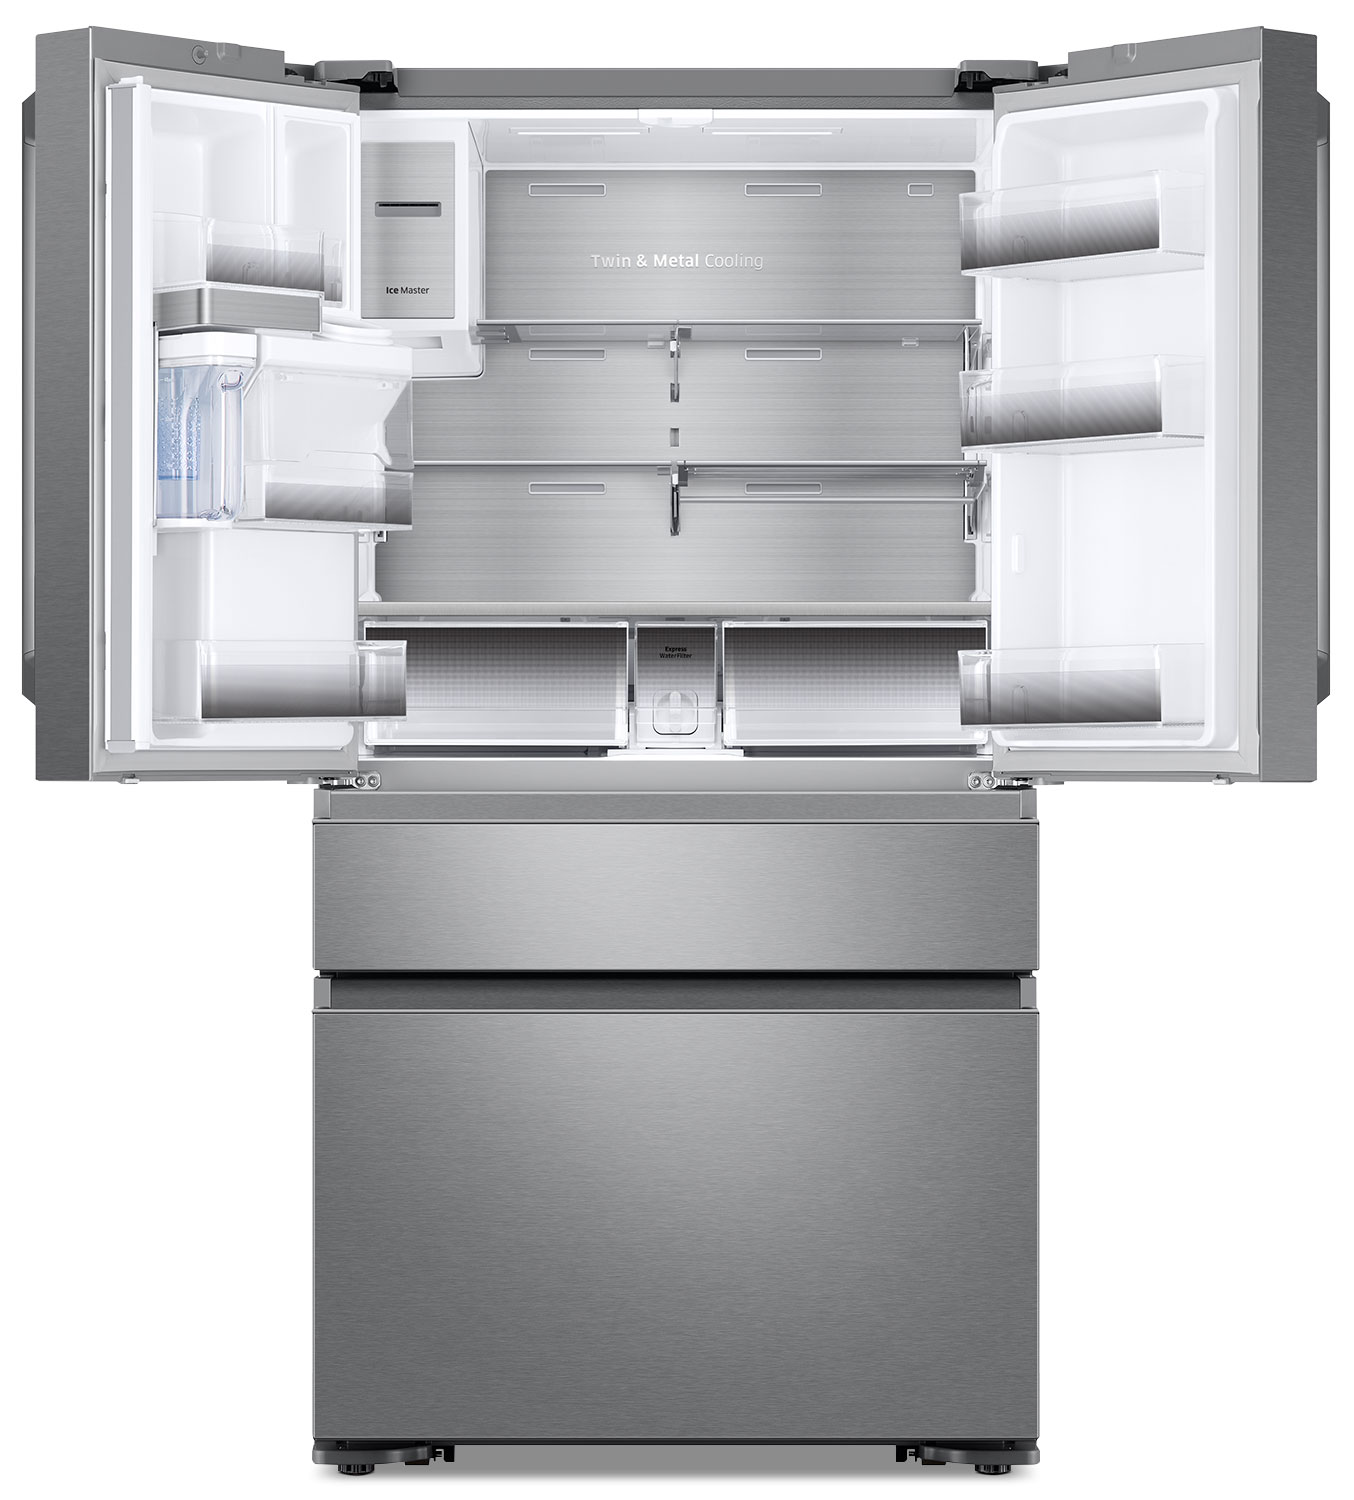 Kitchen small appliances victoria bc - Samsung 22 6 Cu Ft French Door Refrigerator With Flexzone Rf23m8090sr